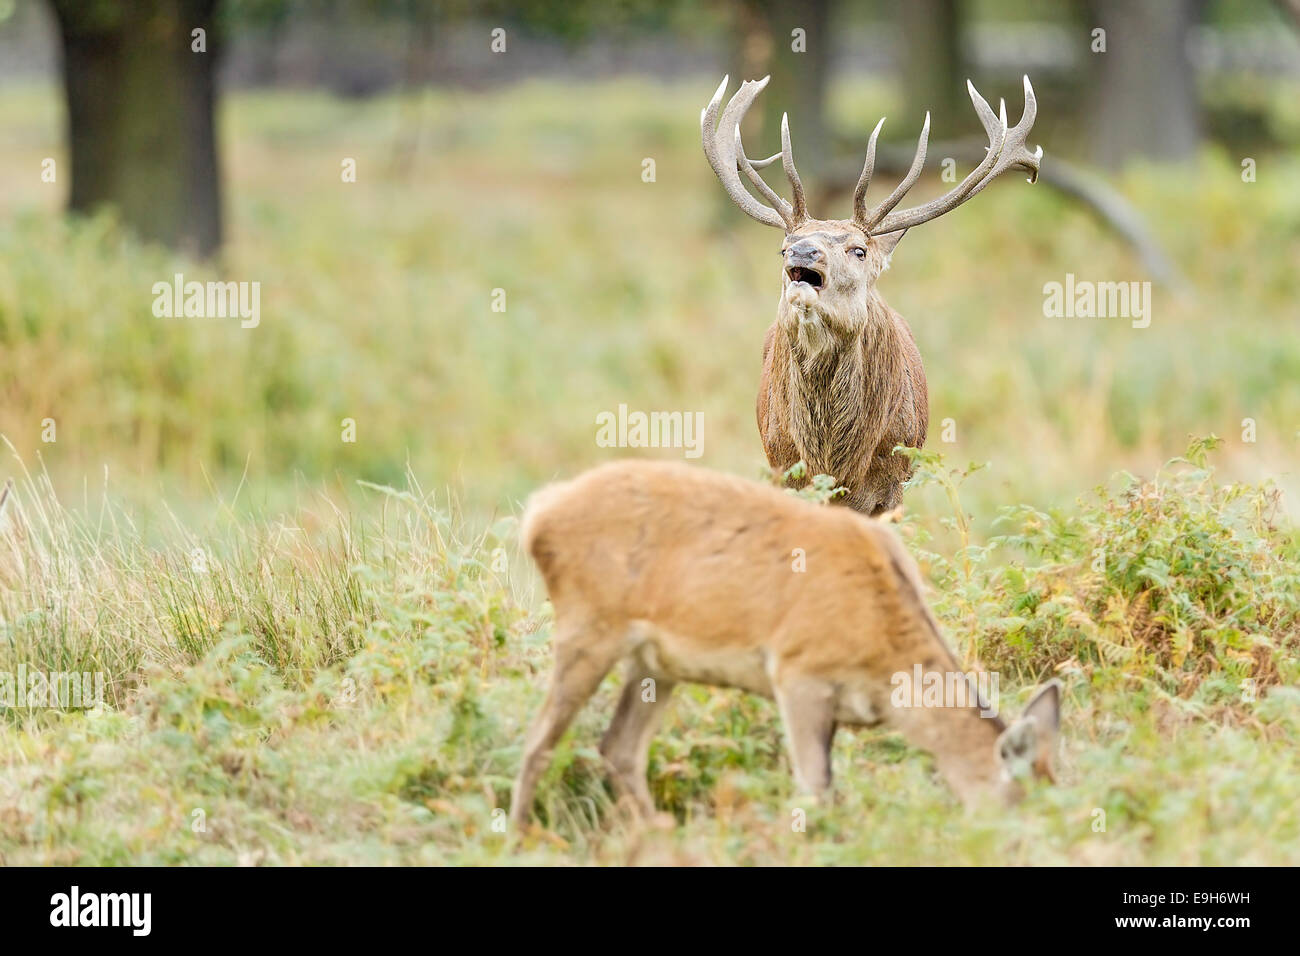 Red deer (Cervus elaphus) stag displays flehmen response during the annual rut - Stock Image